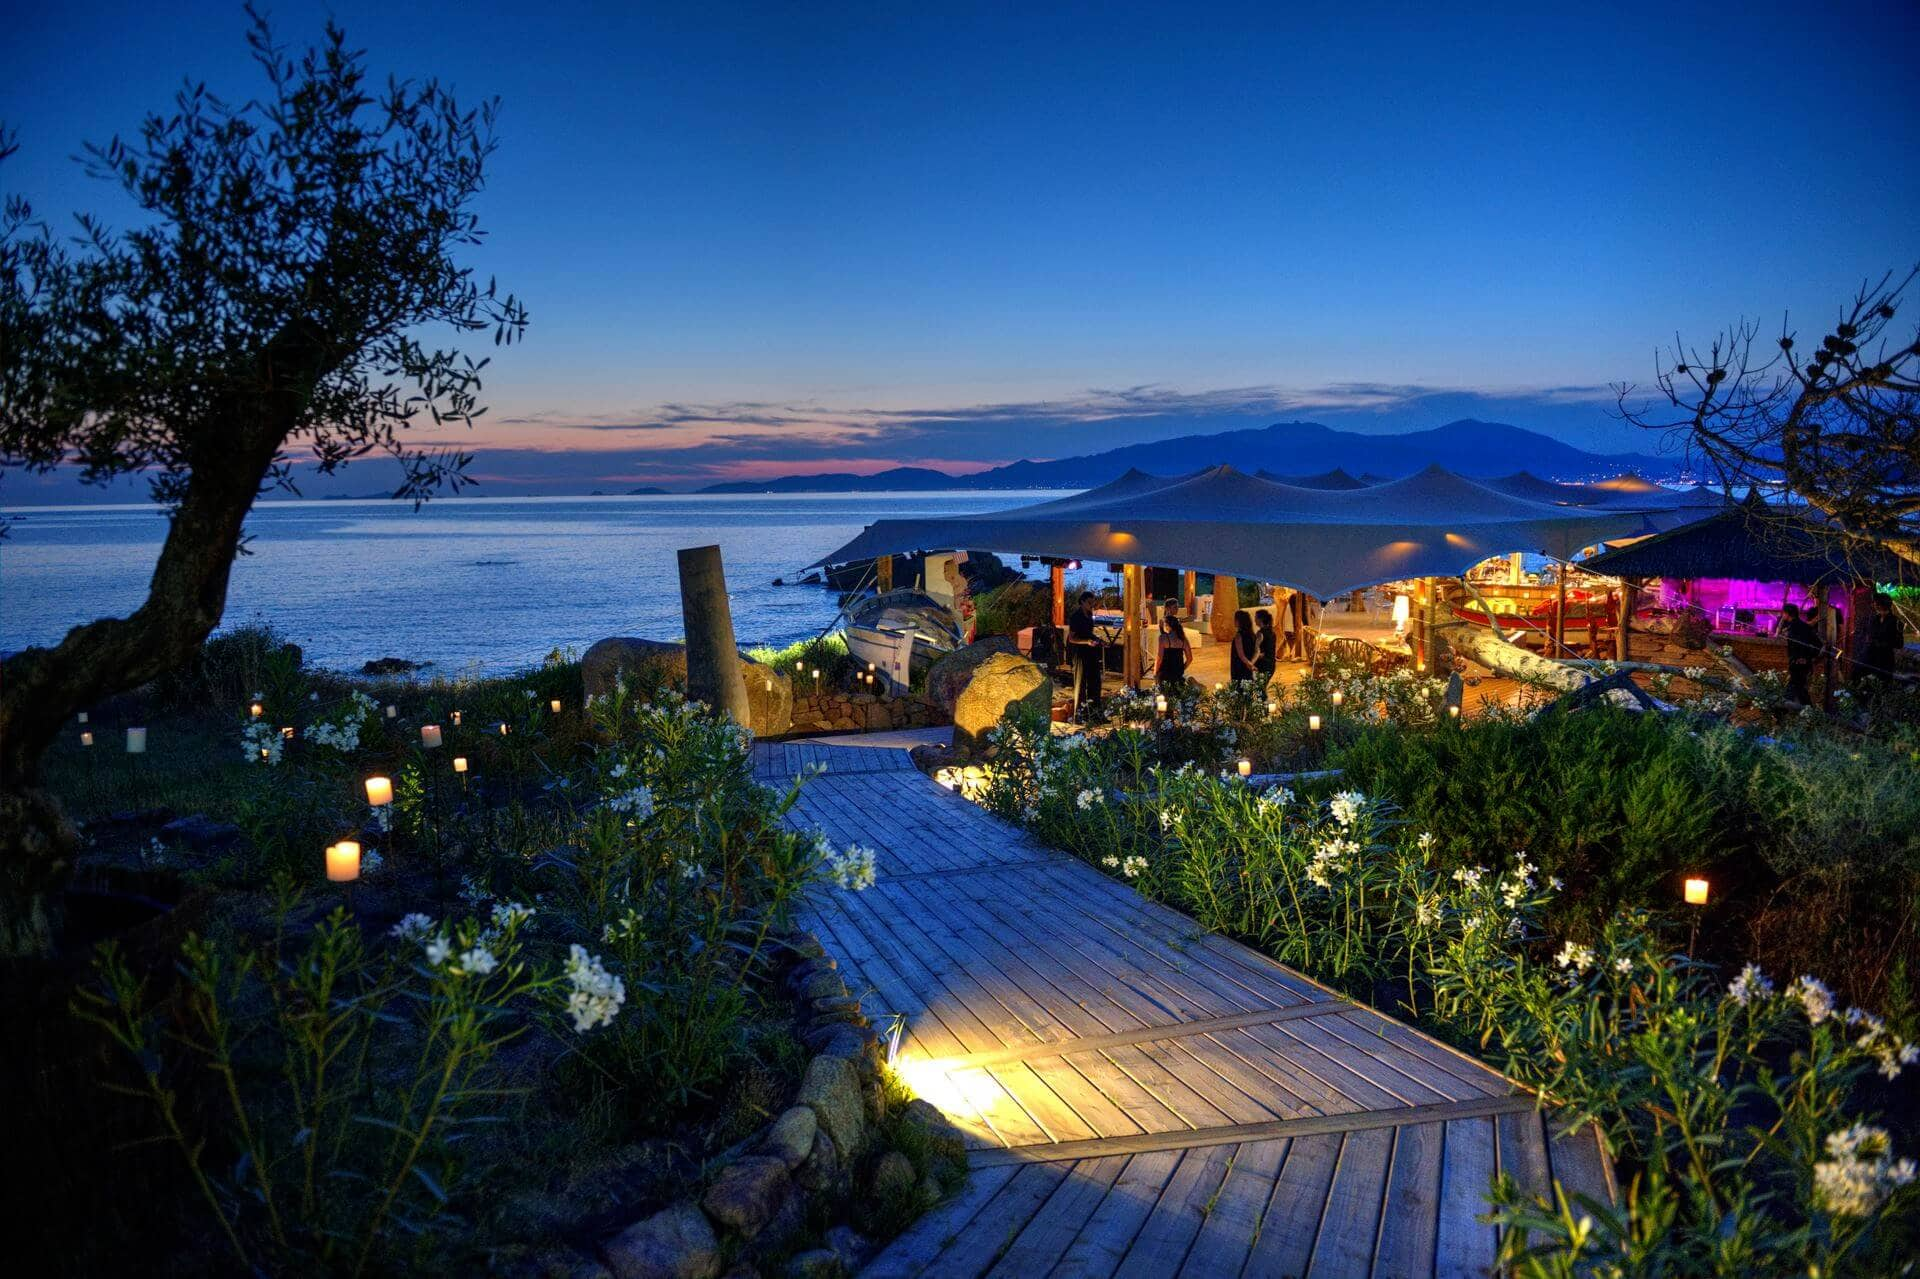 Se marier dans un domaine luxueux de bord de mer en Corse - Getting married in a luxurious seaside estate in Corsica